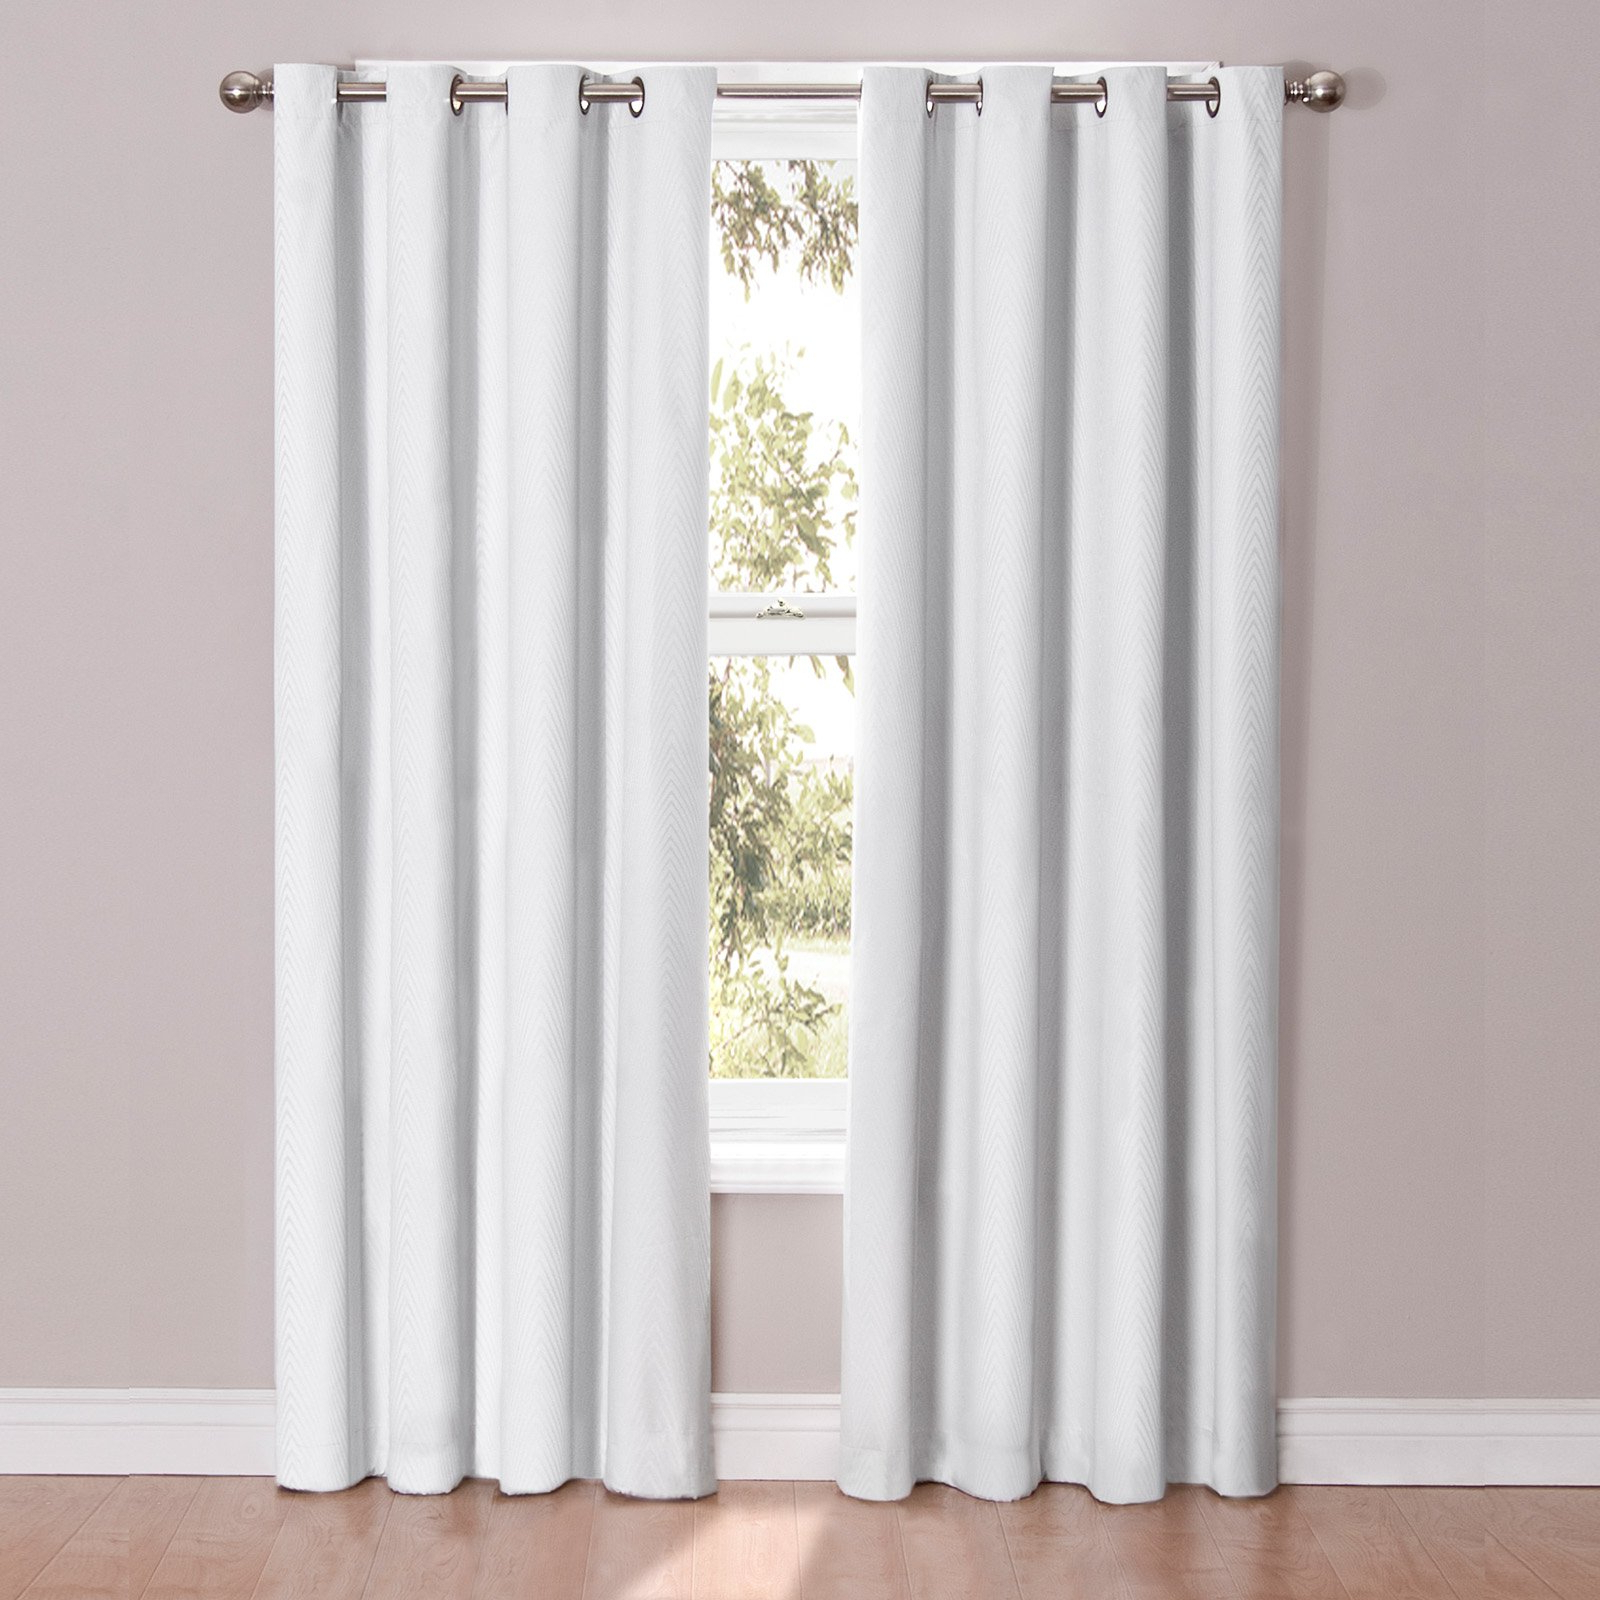 Most Recently Released Thermaback Blackout Window Curtains In Eclipse Cassidy Blackout Grommet Window Curtain Panel (View 12 of 20)